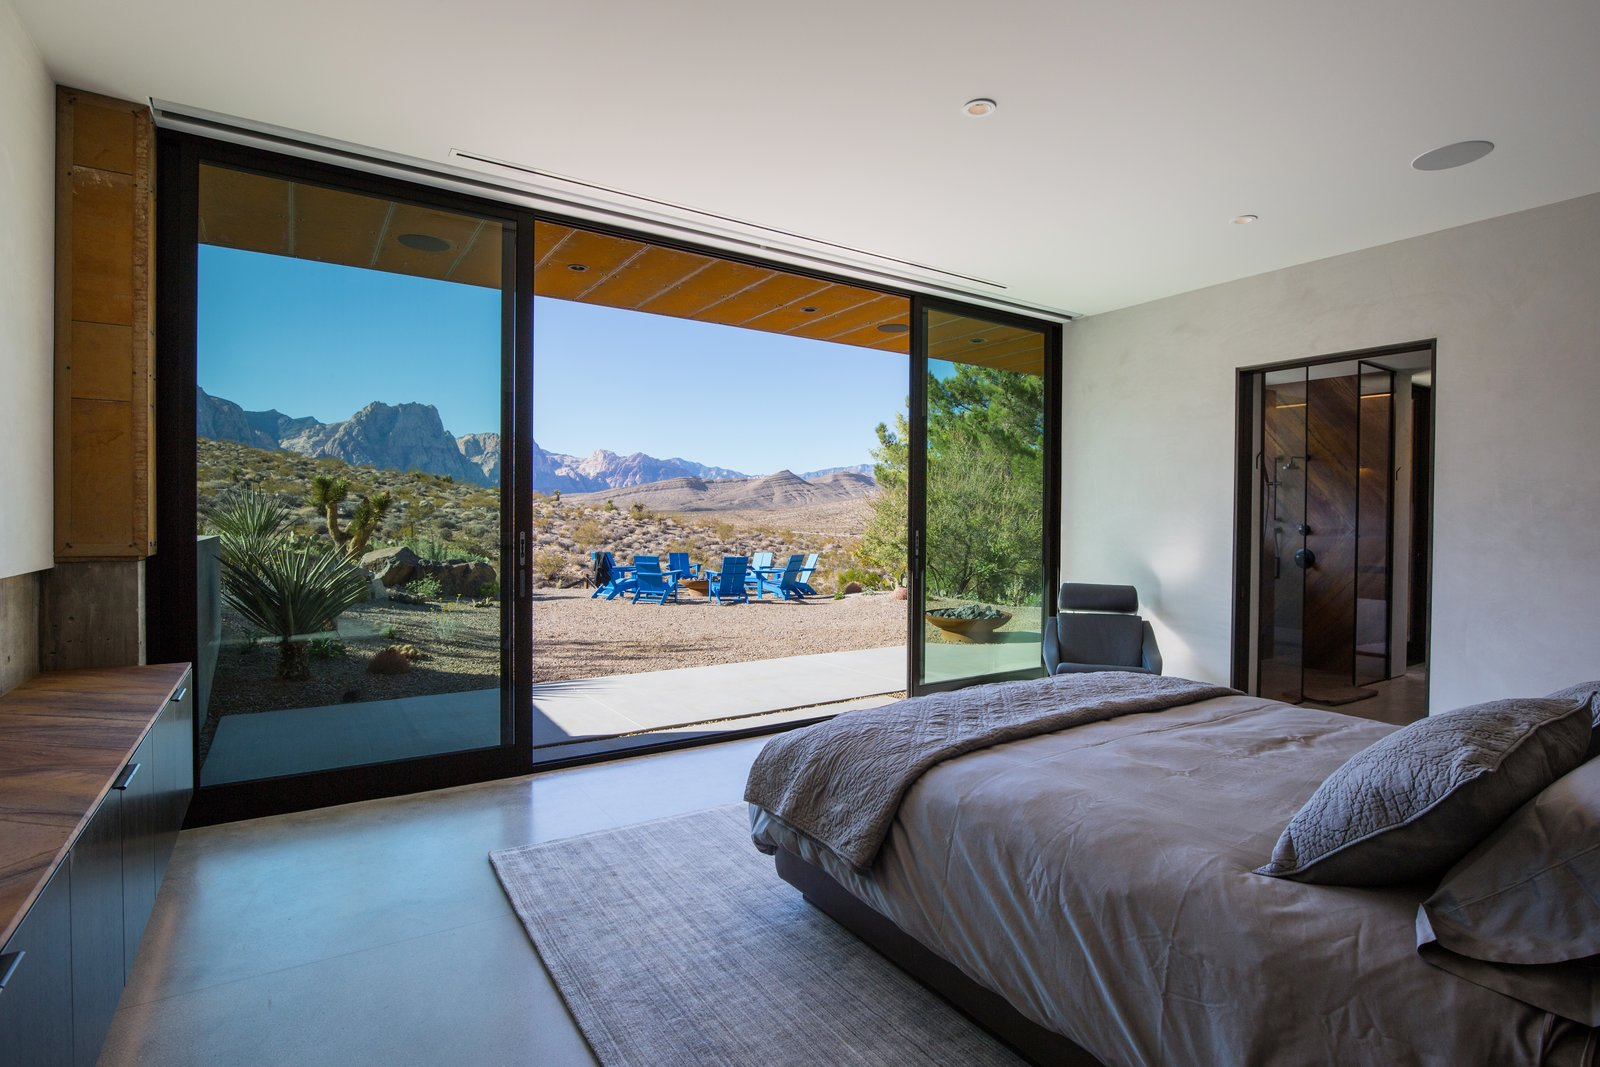 Bedroom, Ceiling Lighting, Concrete Floor, Storage, Night Stands, and Bed  minMAX by Punch Architecture